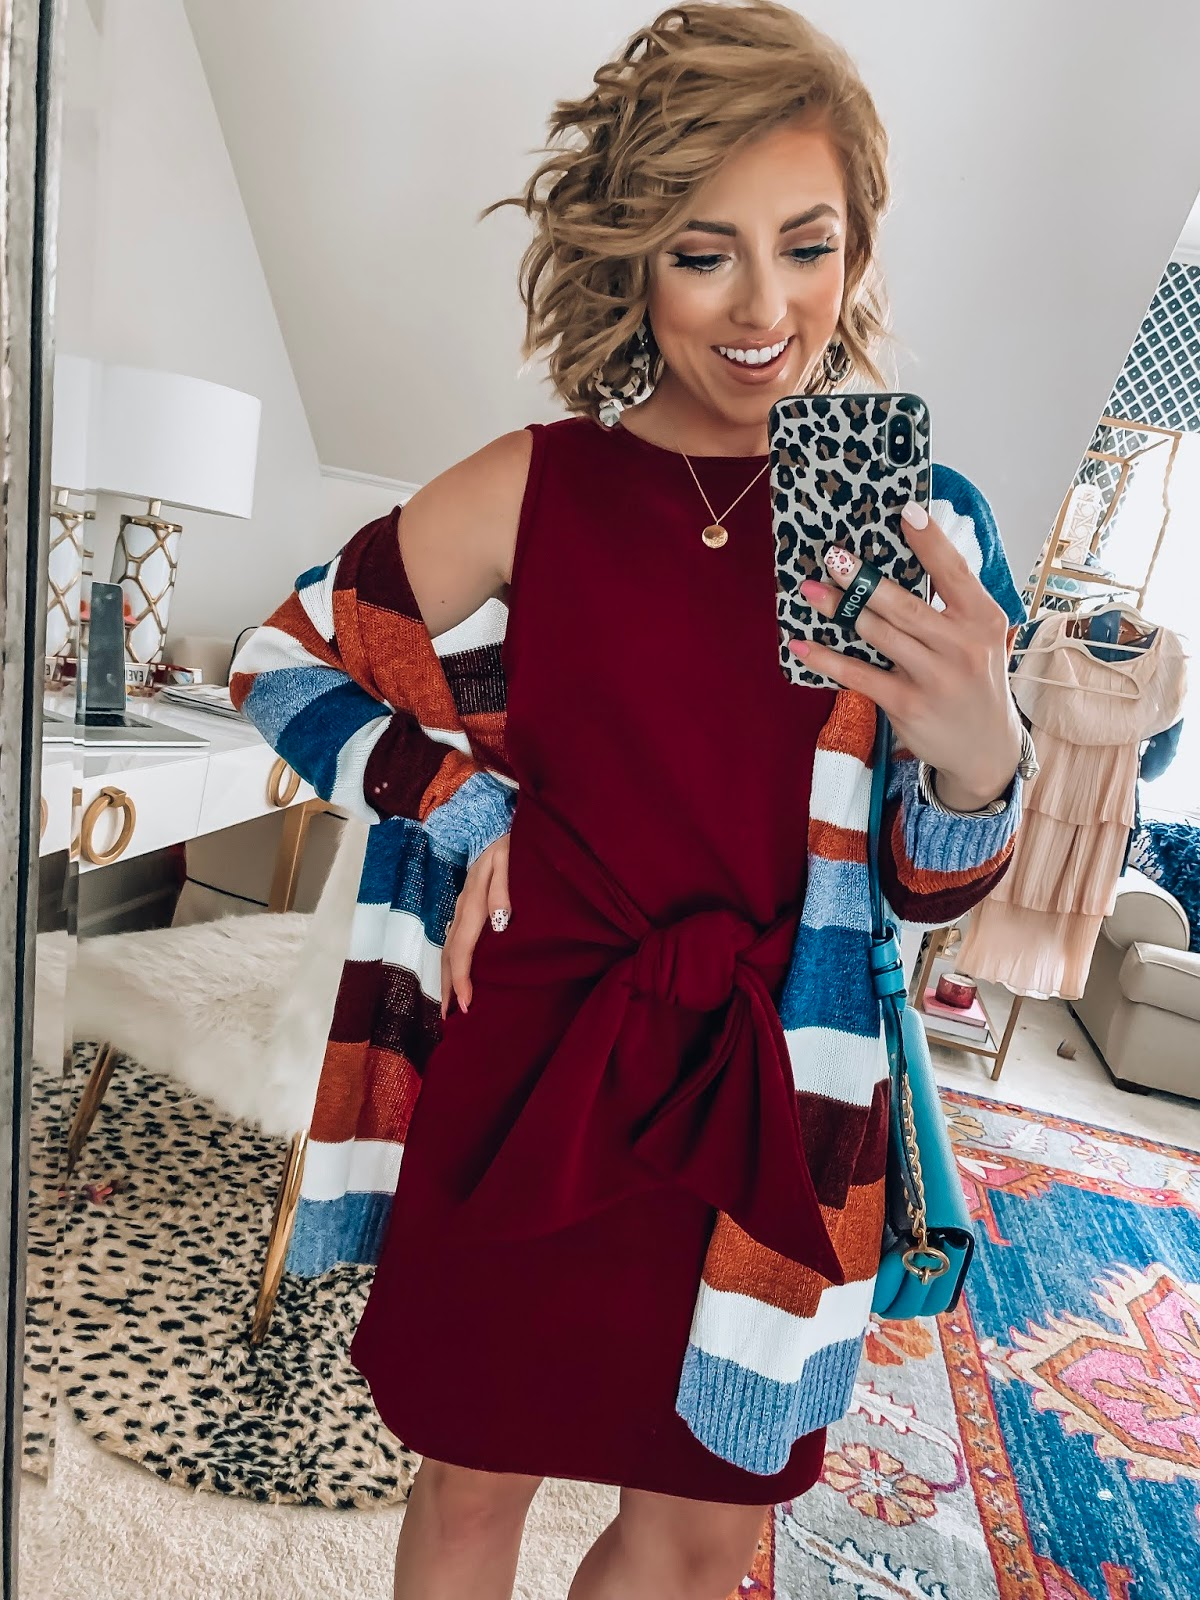 $17 Tie Front Dress + $28 Stripe Cardigan - The Perfect look for transitioning into fall - Recent Amazon Finds - Something Delightful Blog